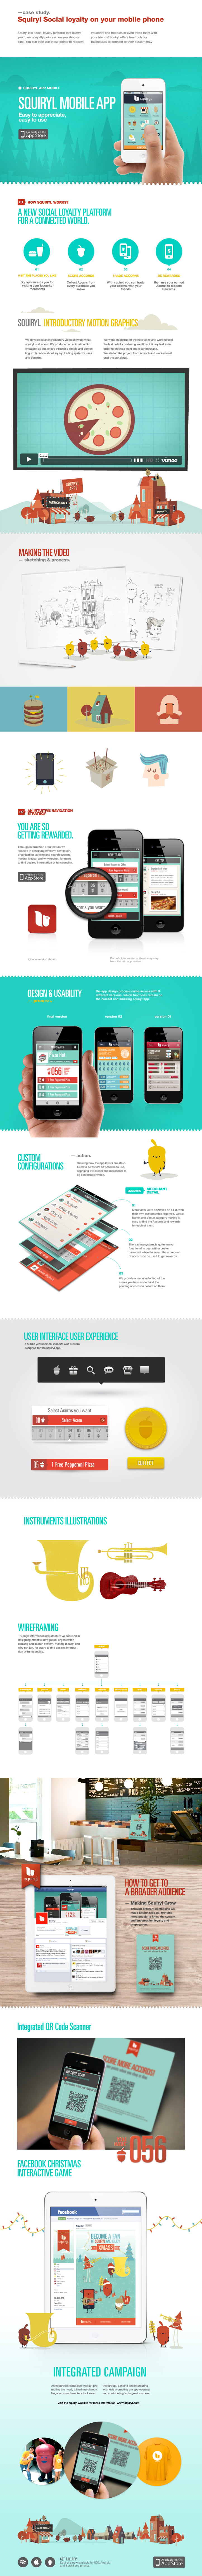 http://www.behance.net/gallery/Squiryl-Social-Loyalty-on-your-mobile-phone/6631039